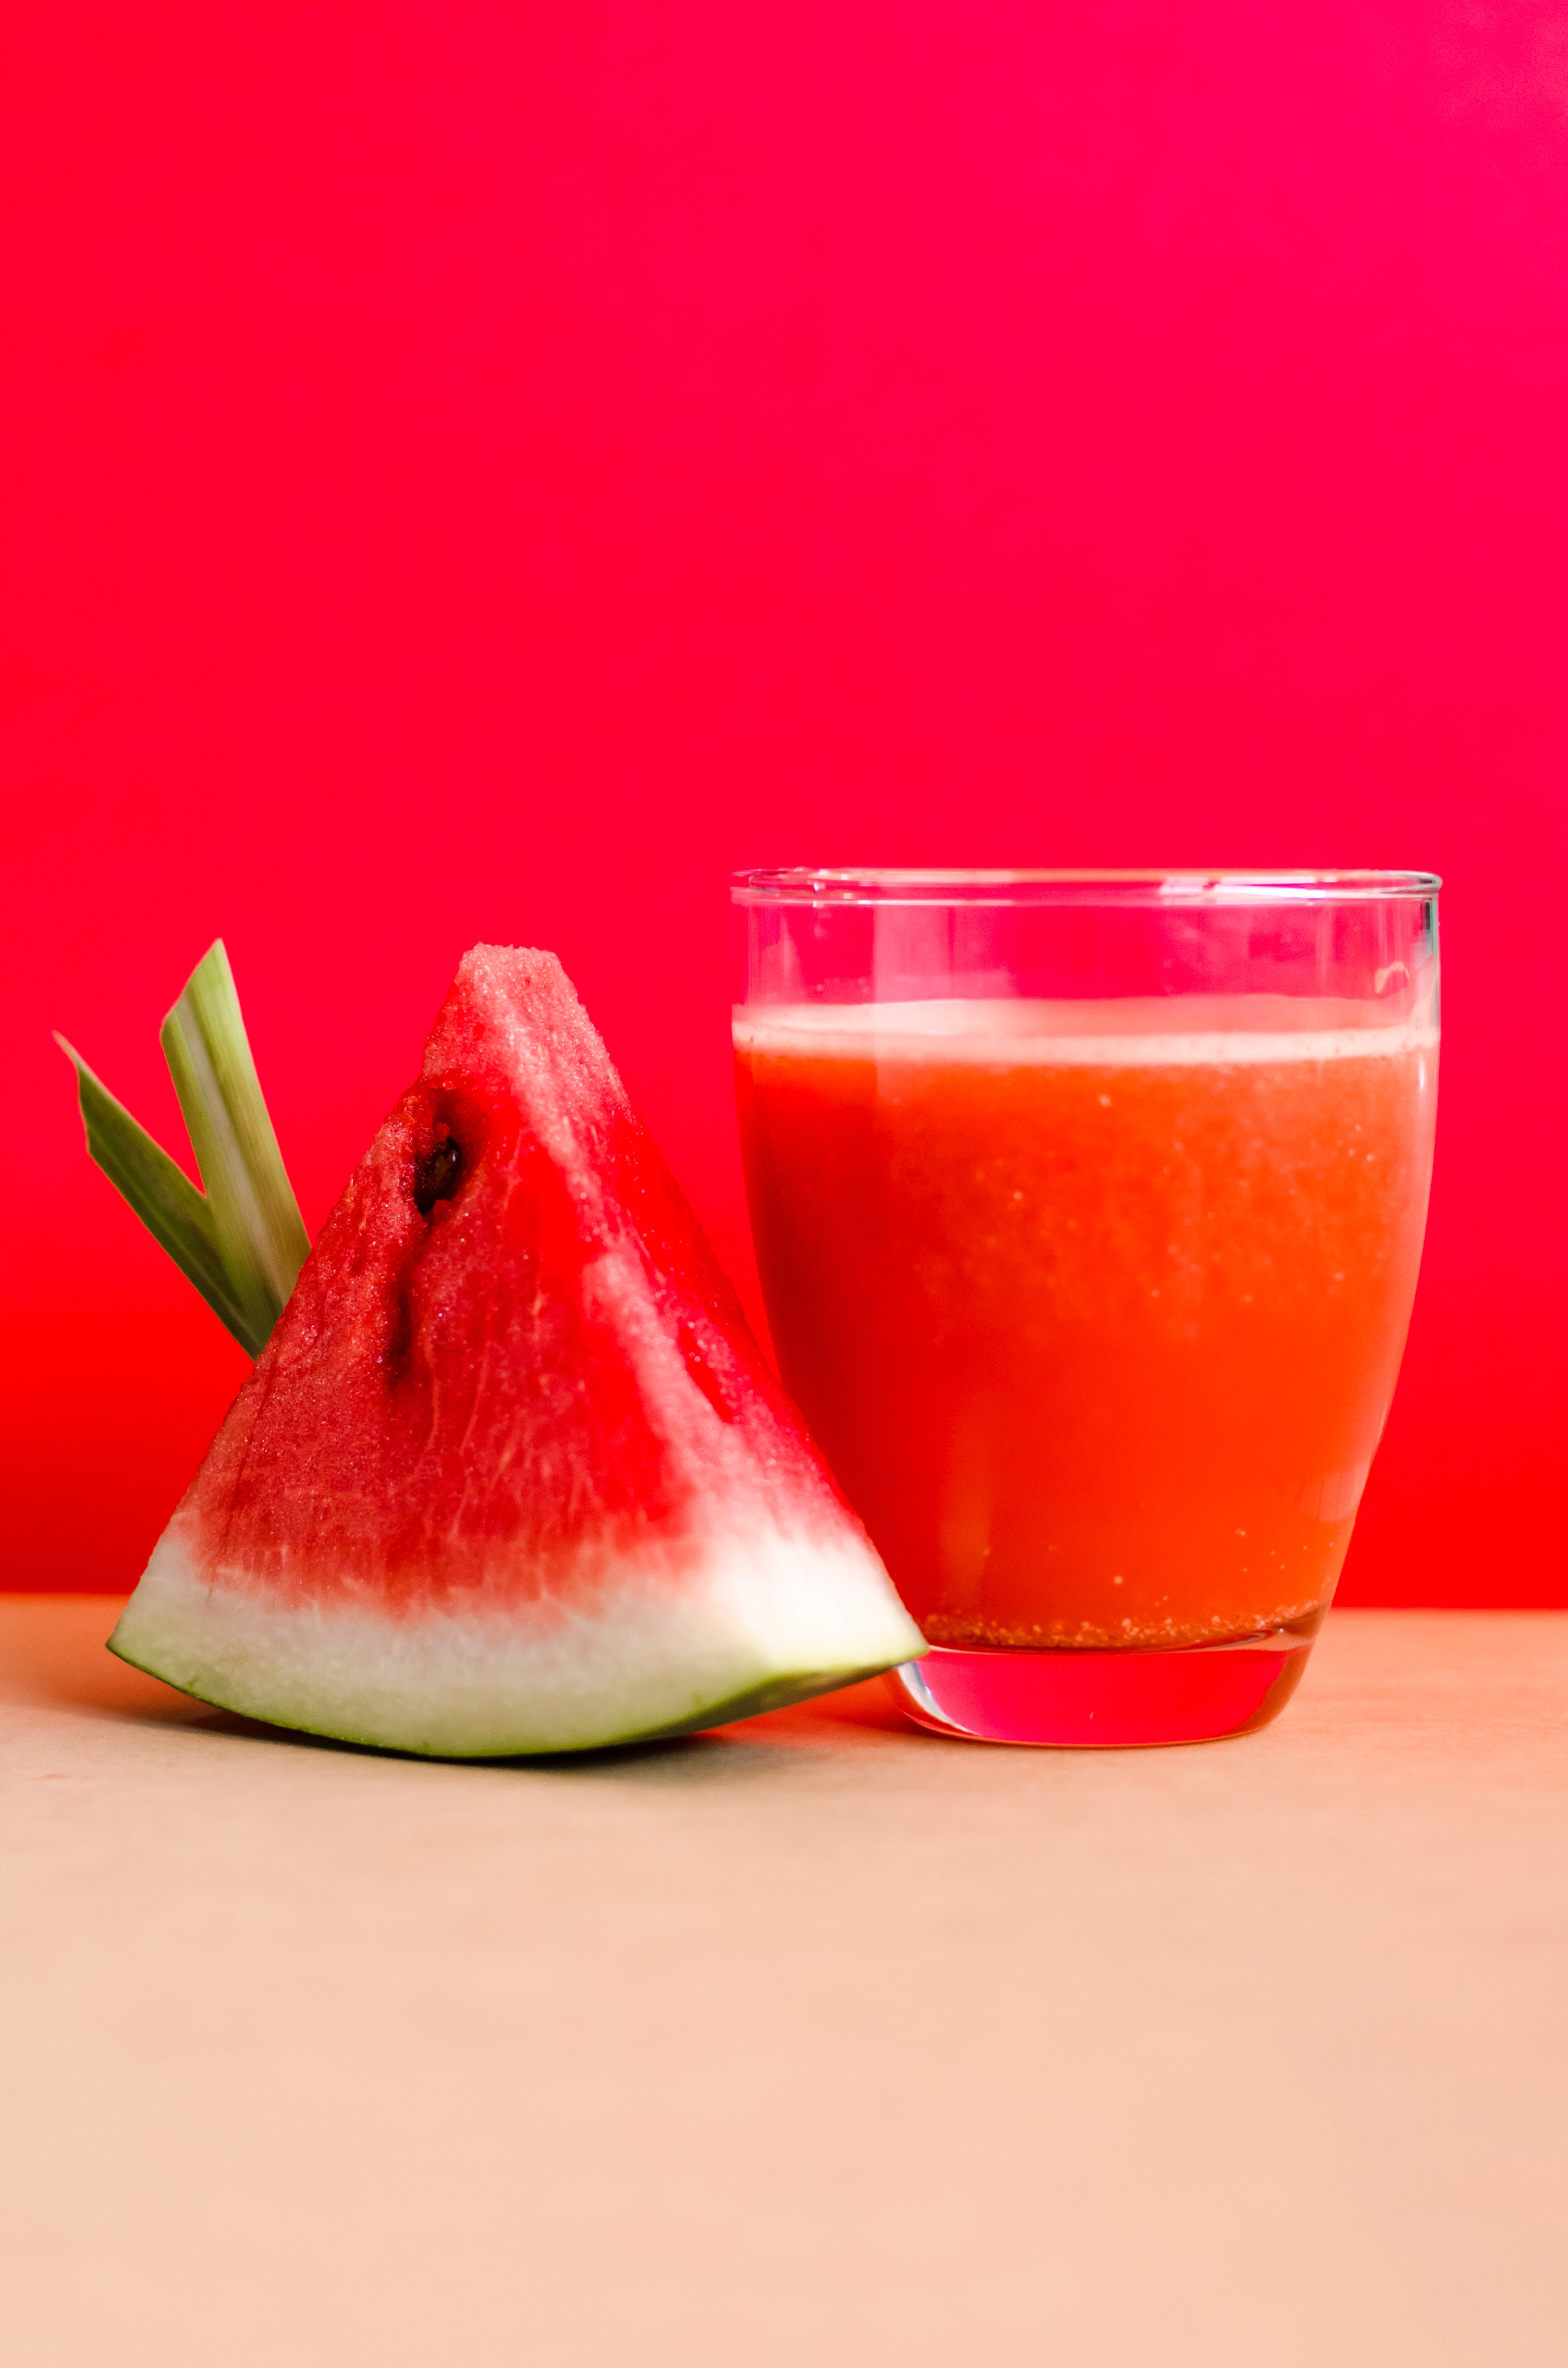 watermelon-shake-filled-glass-cup-beside-sliced-watermelon-1337825.jpg